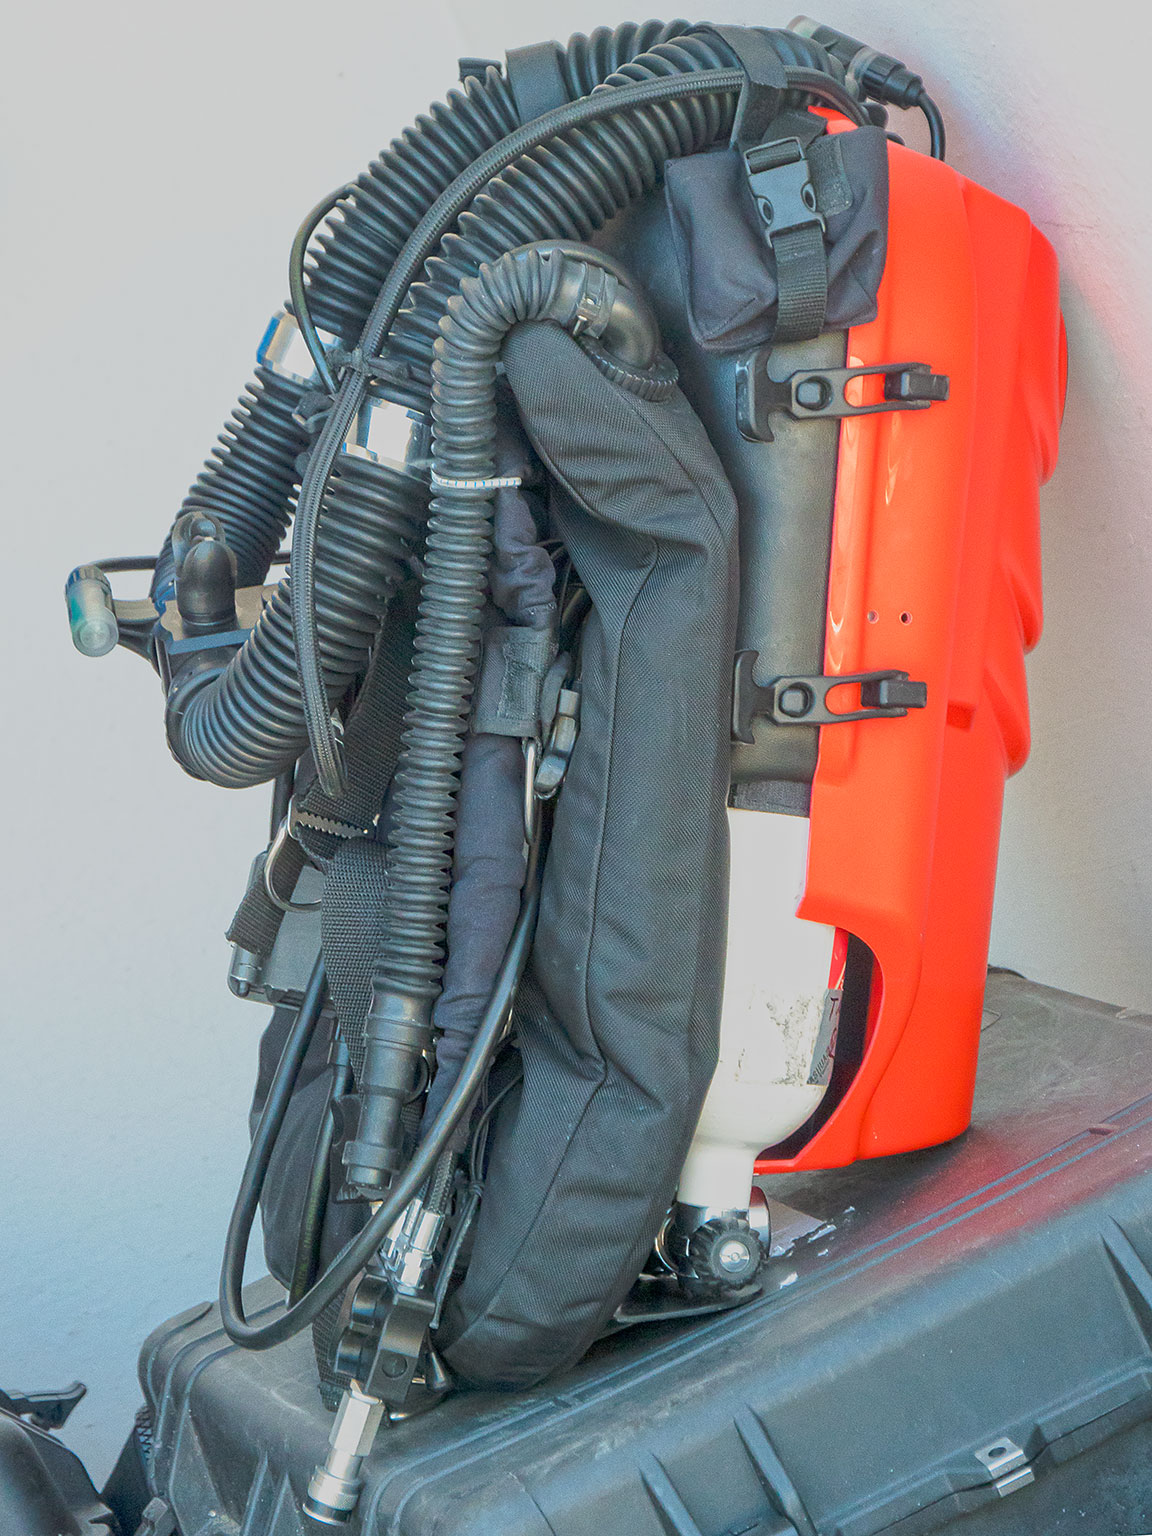 This is the VMS Sentinal rebreather that most of the team is using.